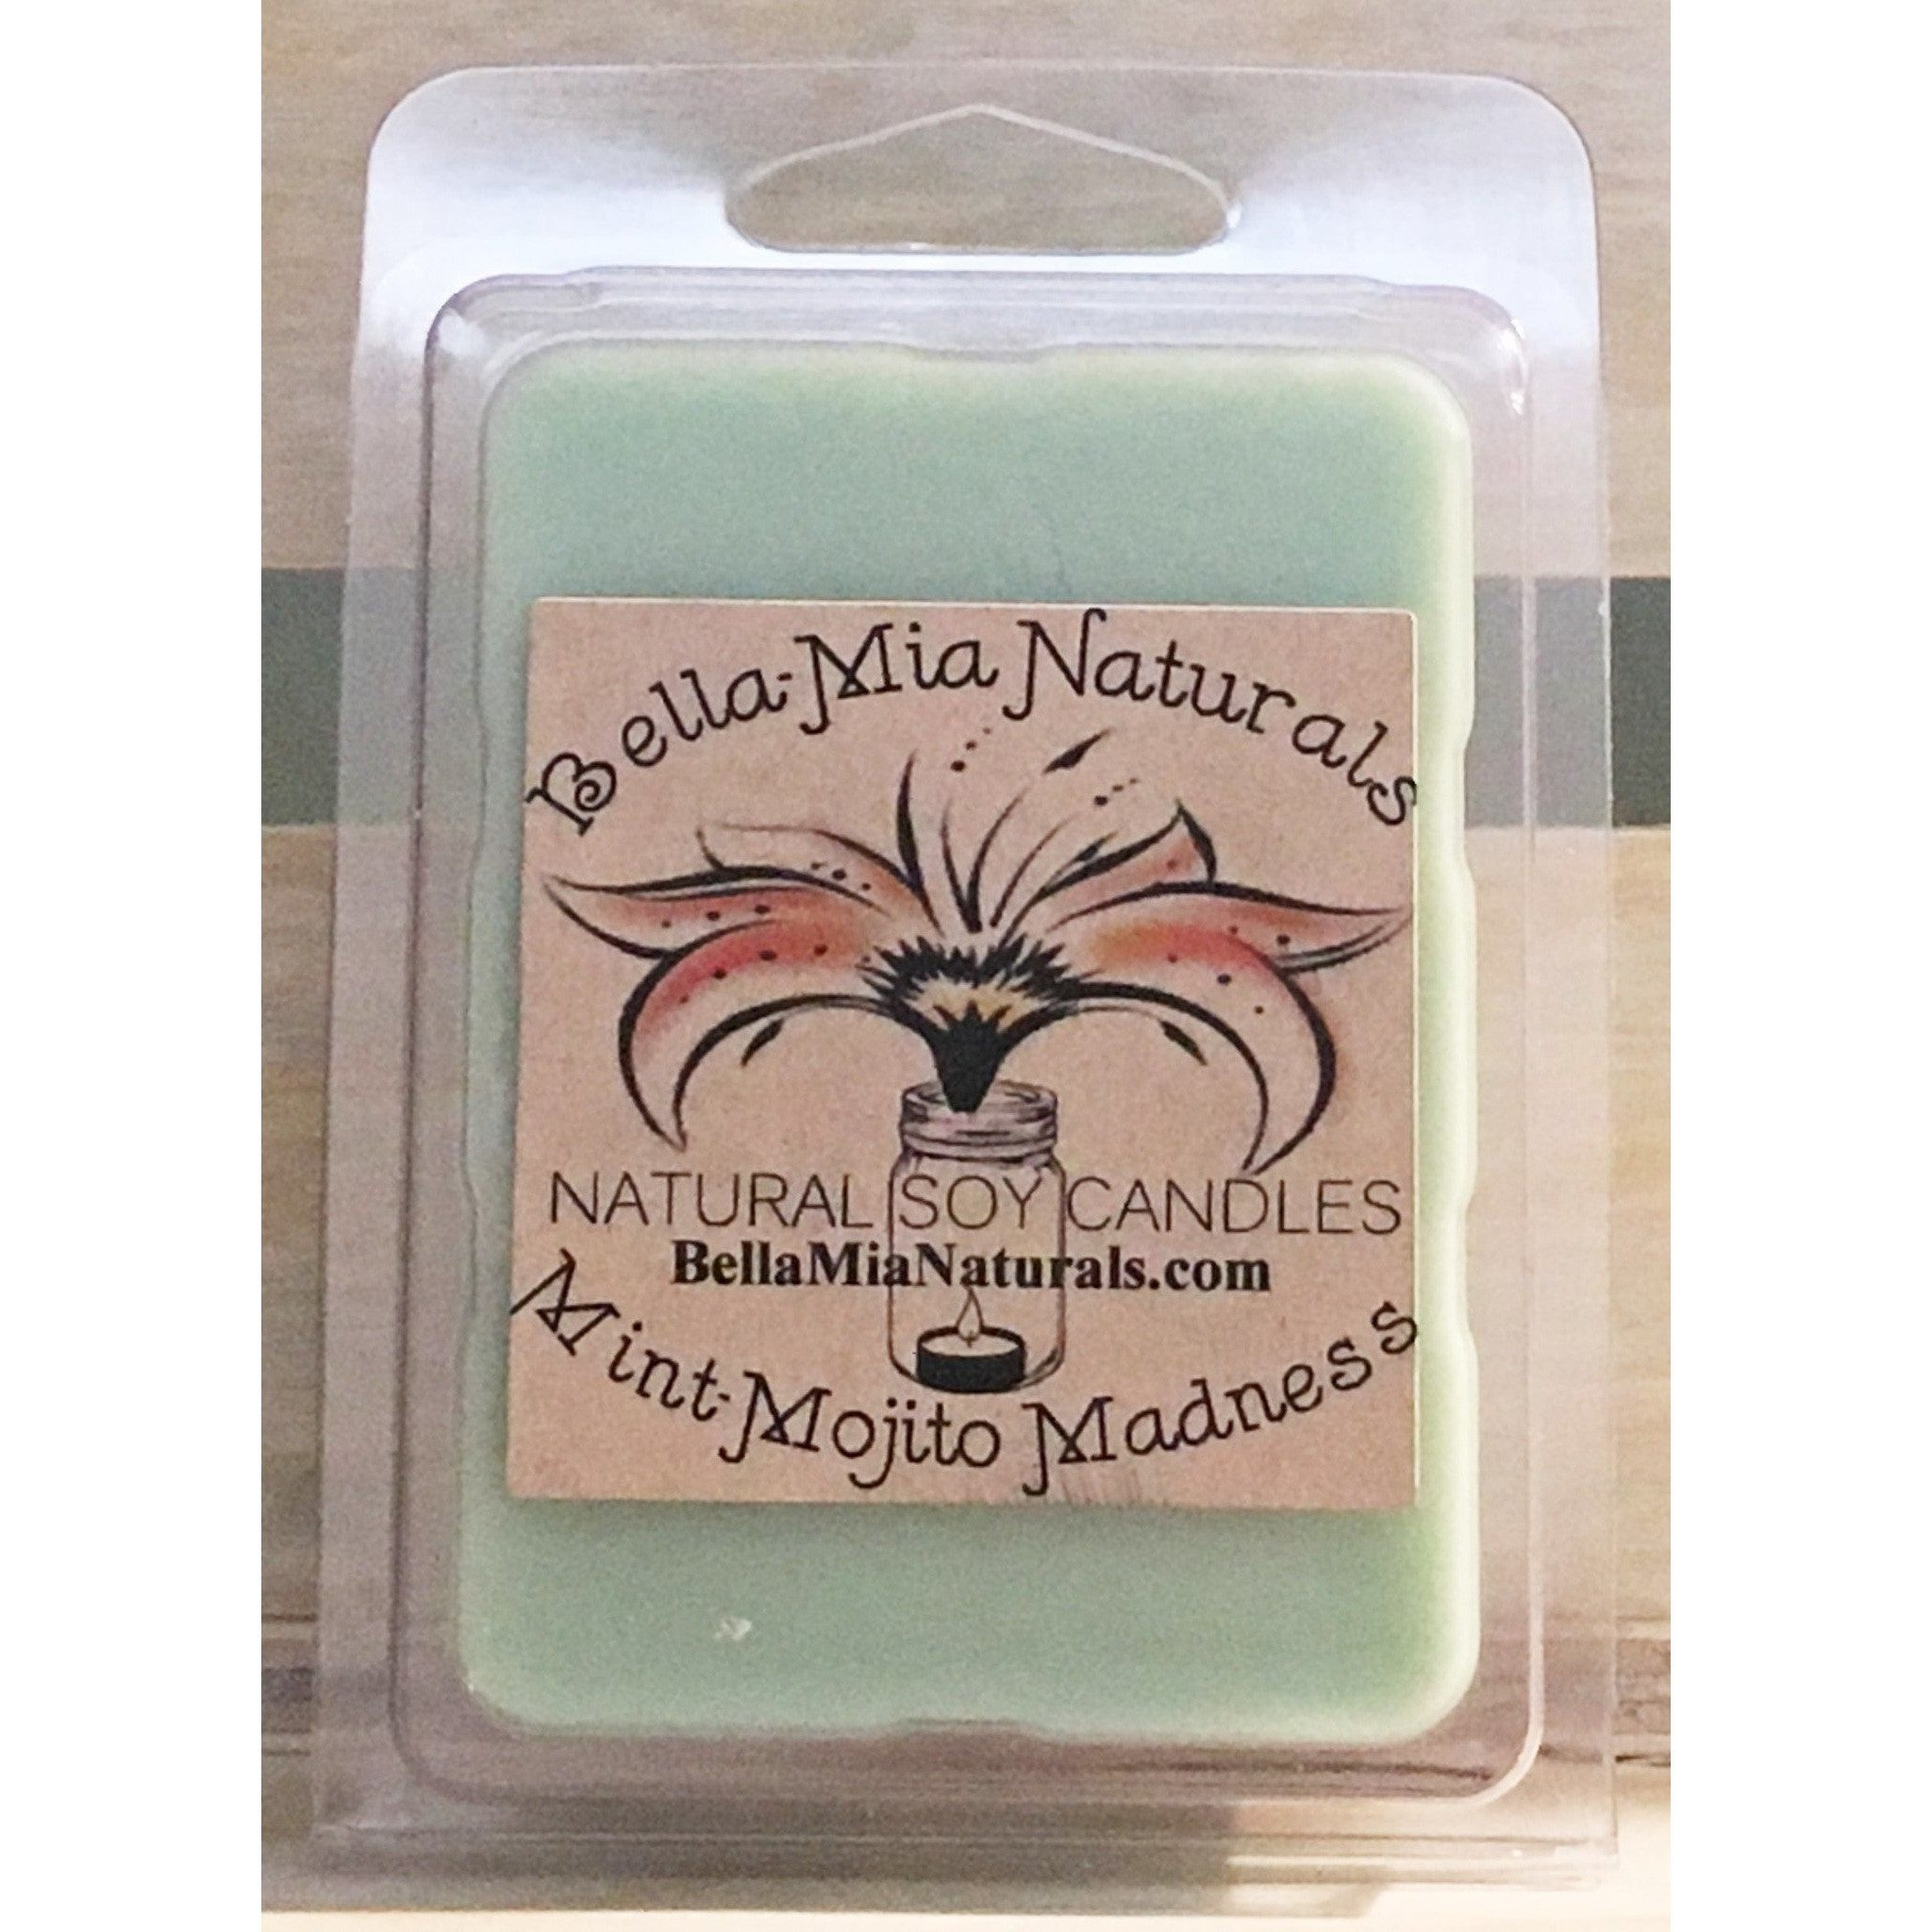 Mint-Mojito Natural Hand Poured Soy Candles - Melt-6 Pack - Bella-Mia Naturals All Natural Soy Candles & Lip Balms - 4